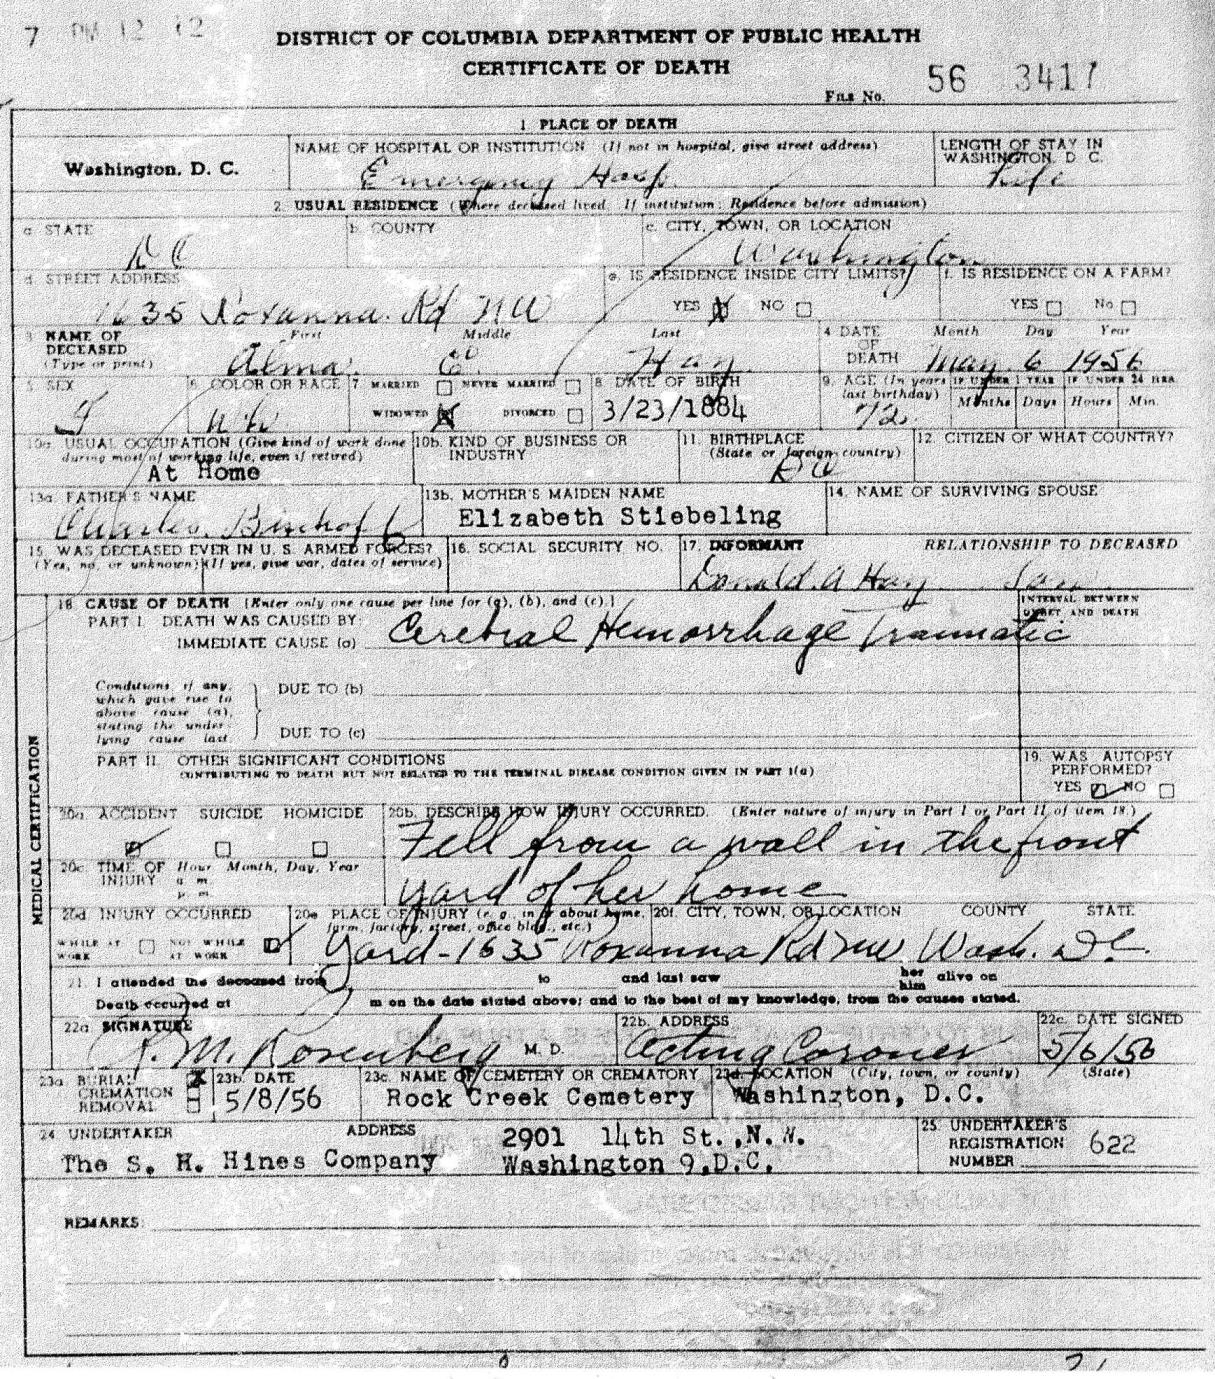 Alma bischoff and robert hay genealogy died may 6 1956 washington dc cerebral hemorrhage death certificate xflitez Image collections